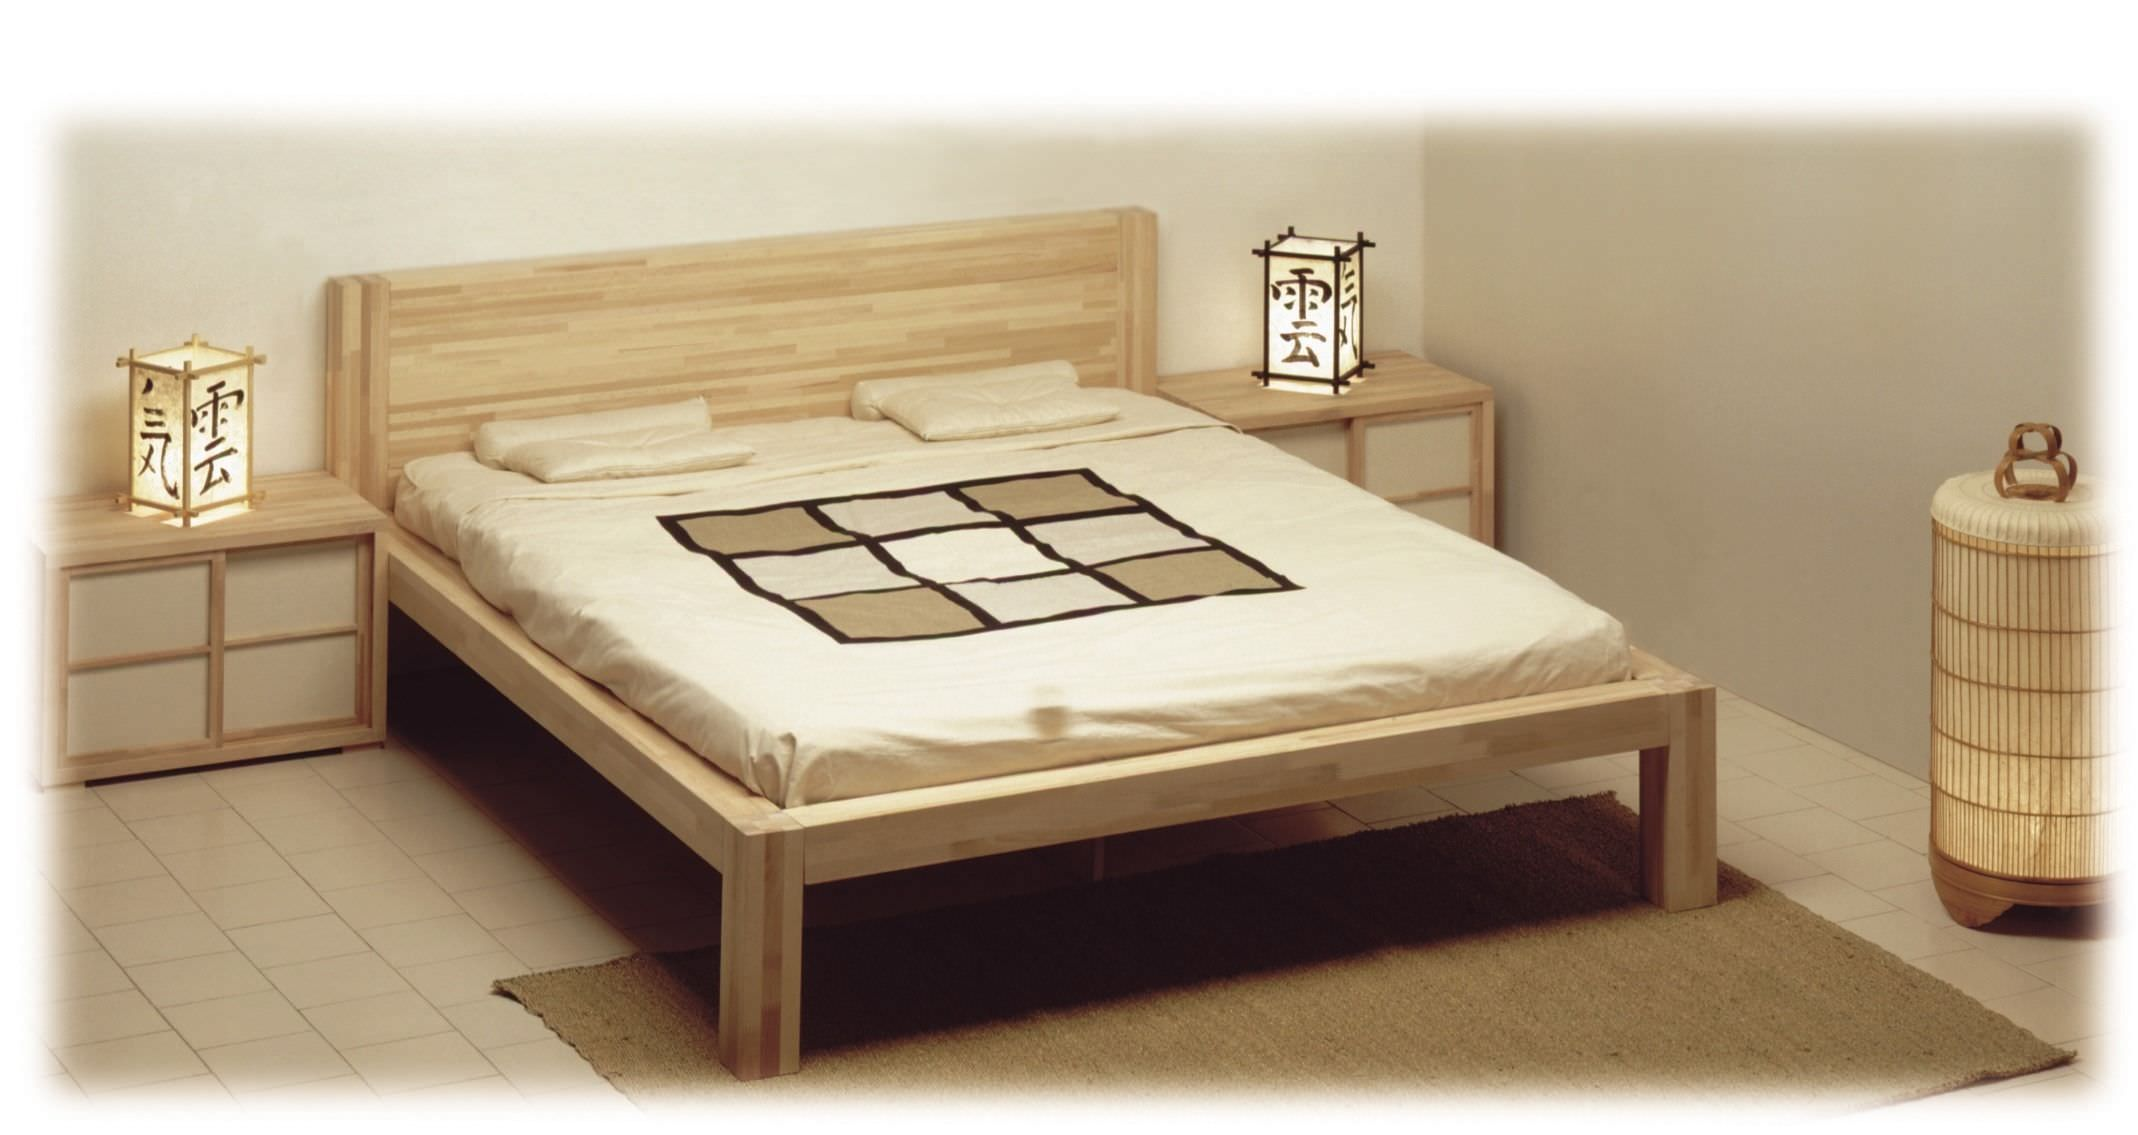 Letto tatami ikea beds pinterest bed wood and solid - Spalliera letto ikea ...